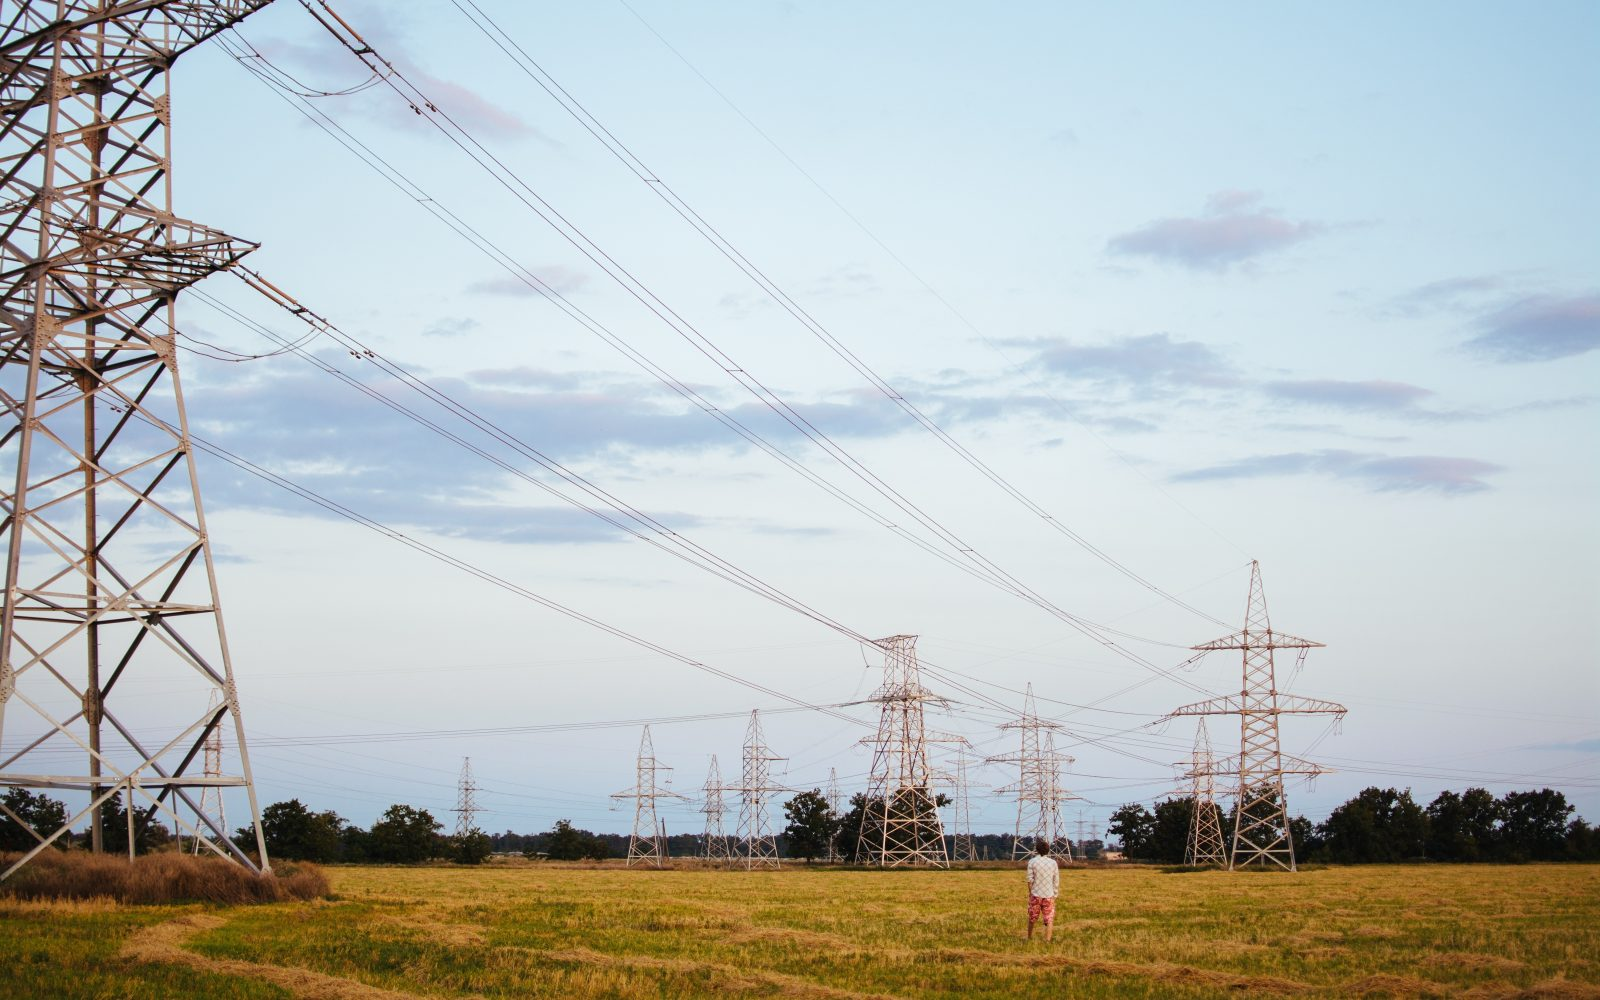 Ofgem's report identifies the need for greater flexibility to ensure the security of the grid.